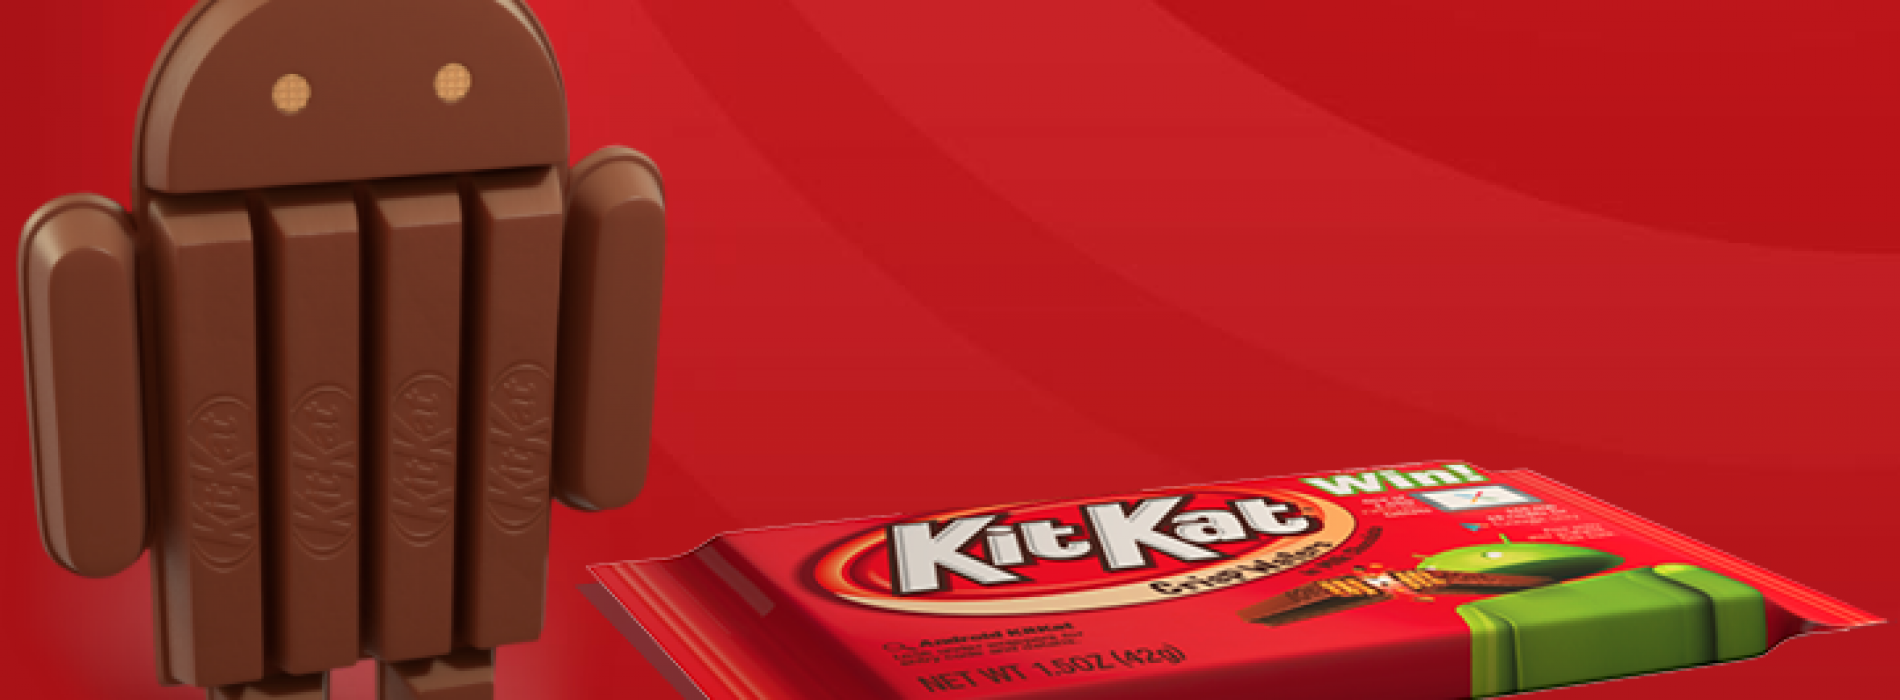 Next version of Android to be 4.4 KitKat, not 5.0 Key Lime Pie